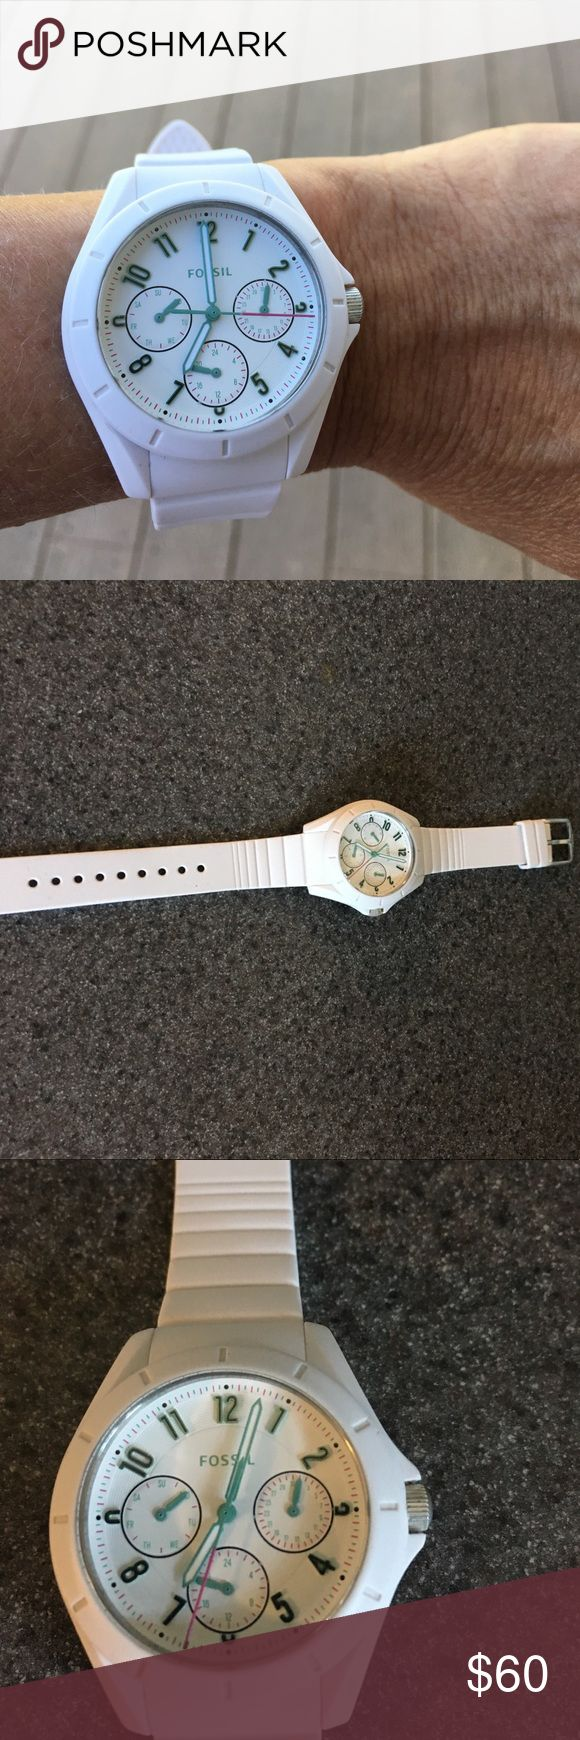 Women's Fossil Poptastic sport watch- white Women's Fossil watch ES4064 Poptastic Sport watch. Battery runs and this sale includes the collectible tin. Bought 2 months ago with little wear. No scratches or nicks on the glass. Fossil Accessories Watches